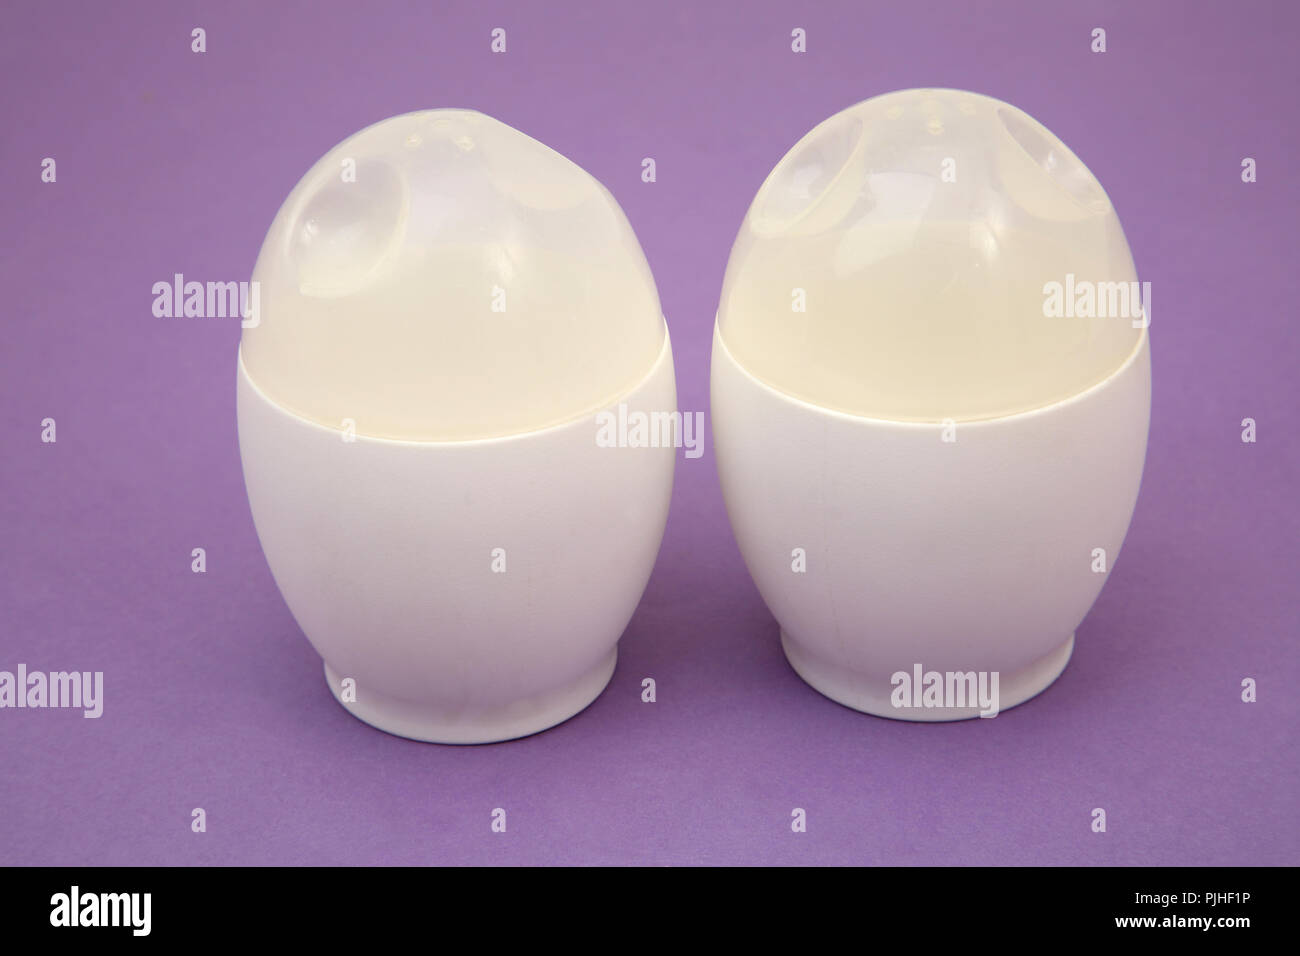 eier in der mikrowelle latest chicken shaped white praktische huhn mikrowelle ei poacher herd. Black Bedroom Furniture Sets. Home Design Ideas